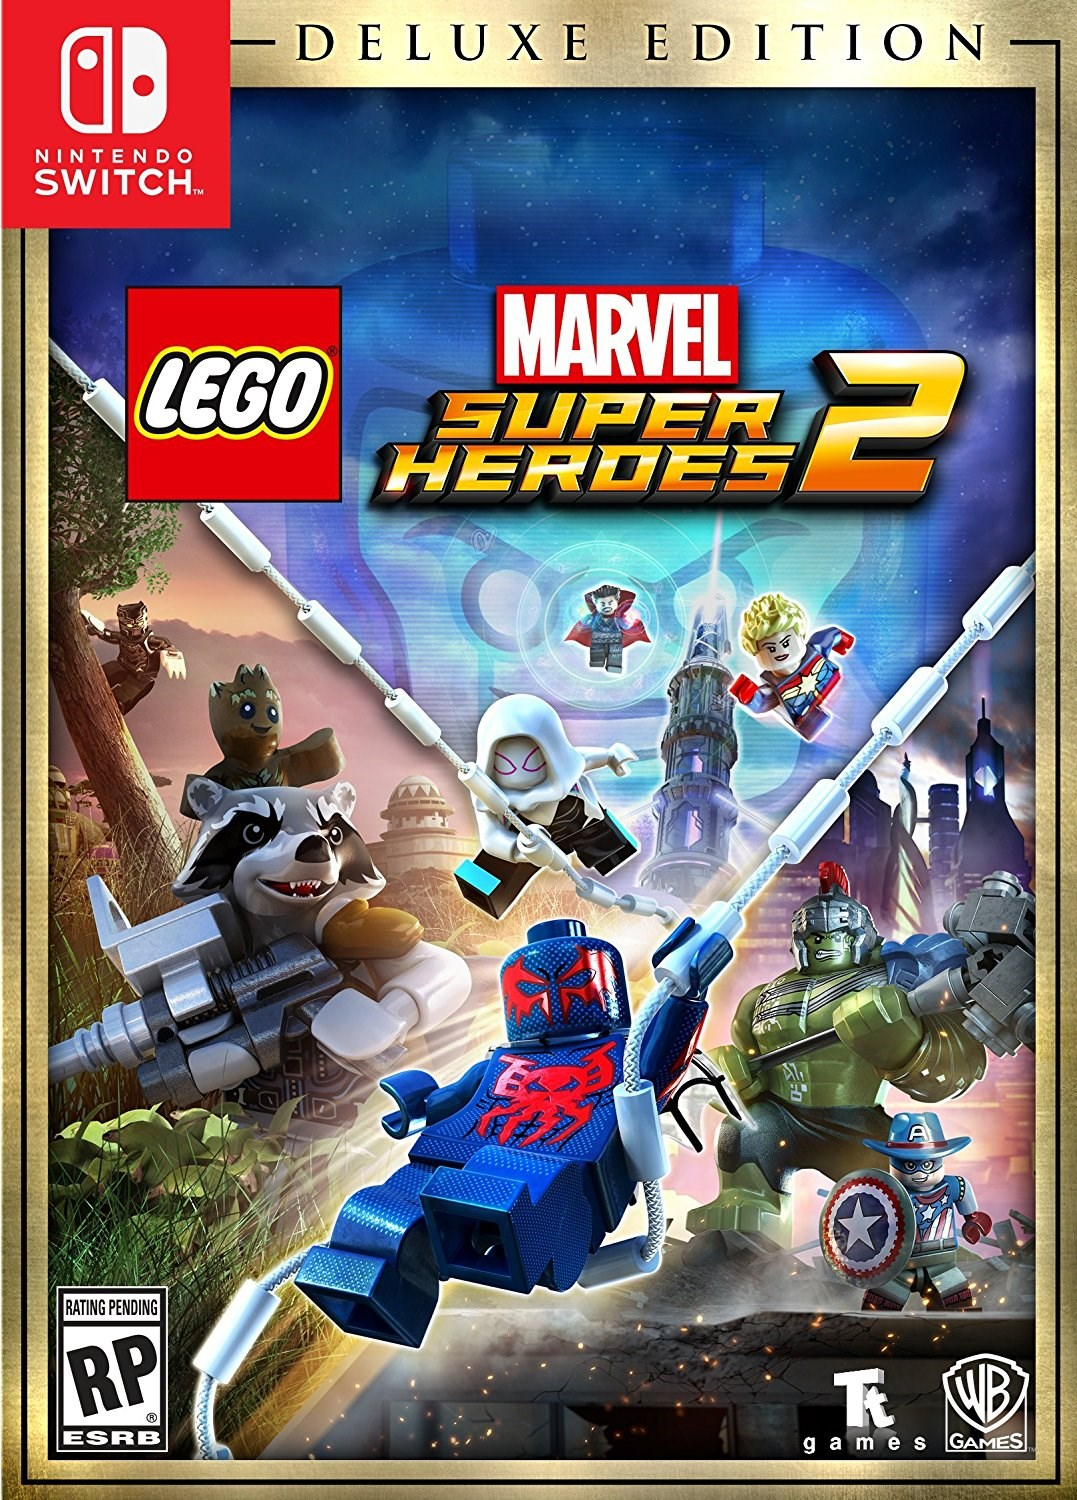 Lego Marvel Super Heroes 2 Deluxe Edition (Nintendo Switch) by WARNER HOME VIDEO GAMES